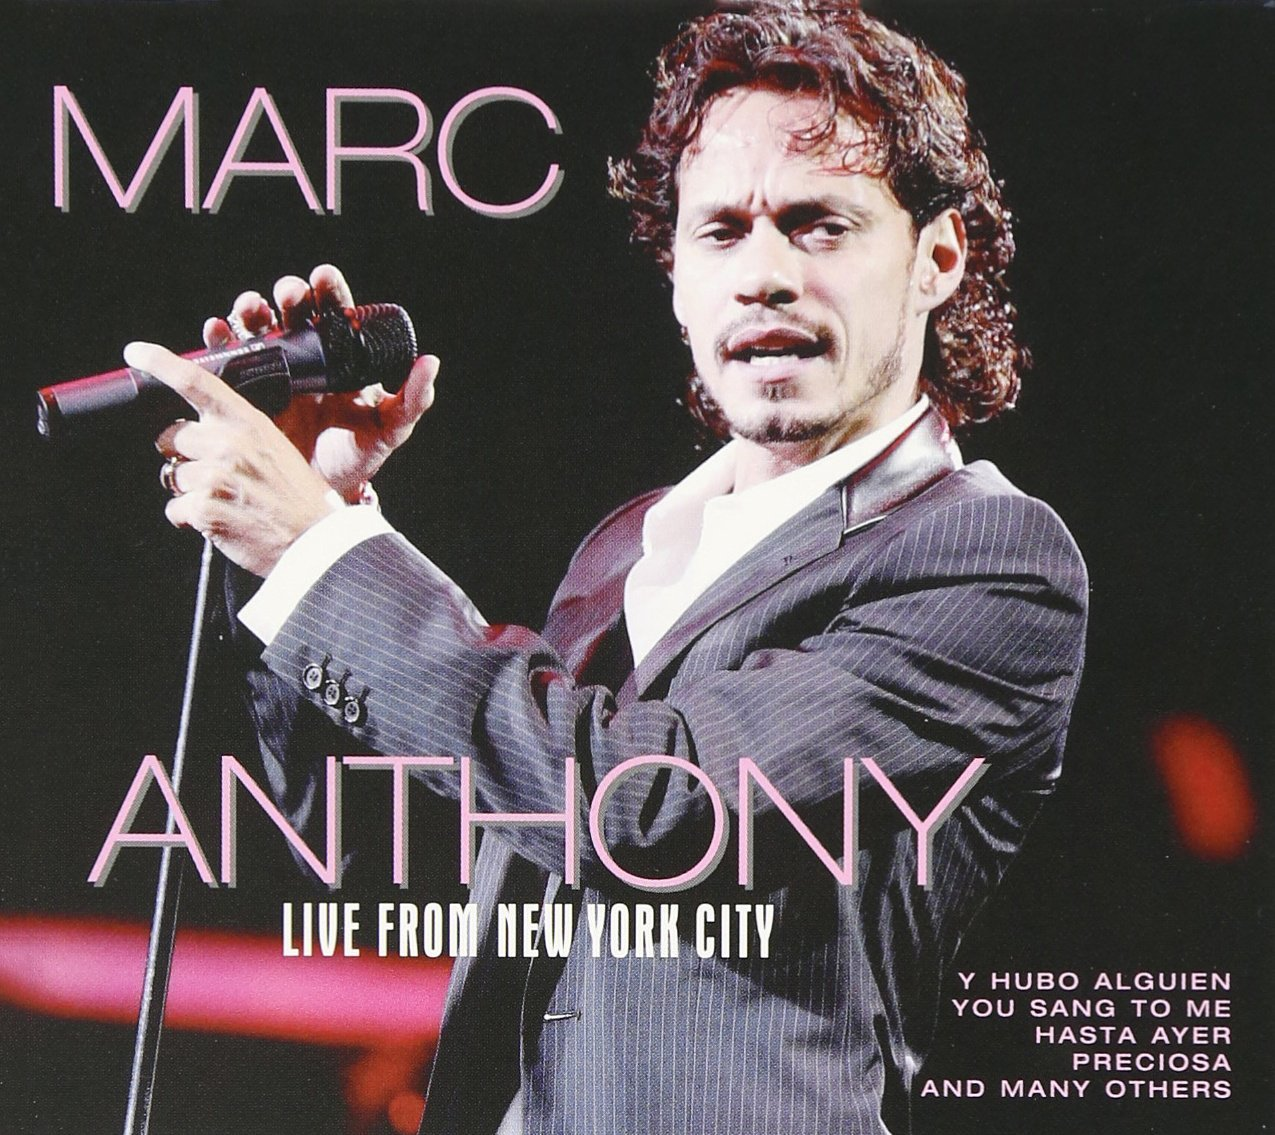 2007 – Live from New York City